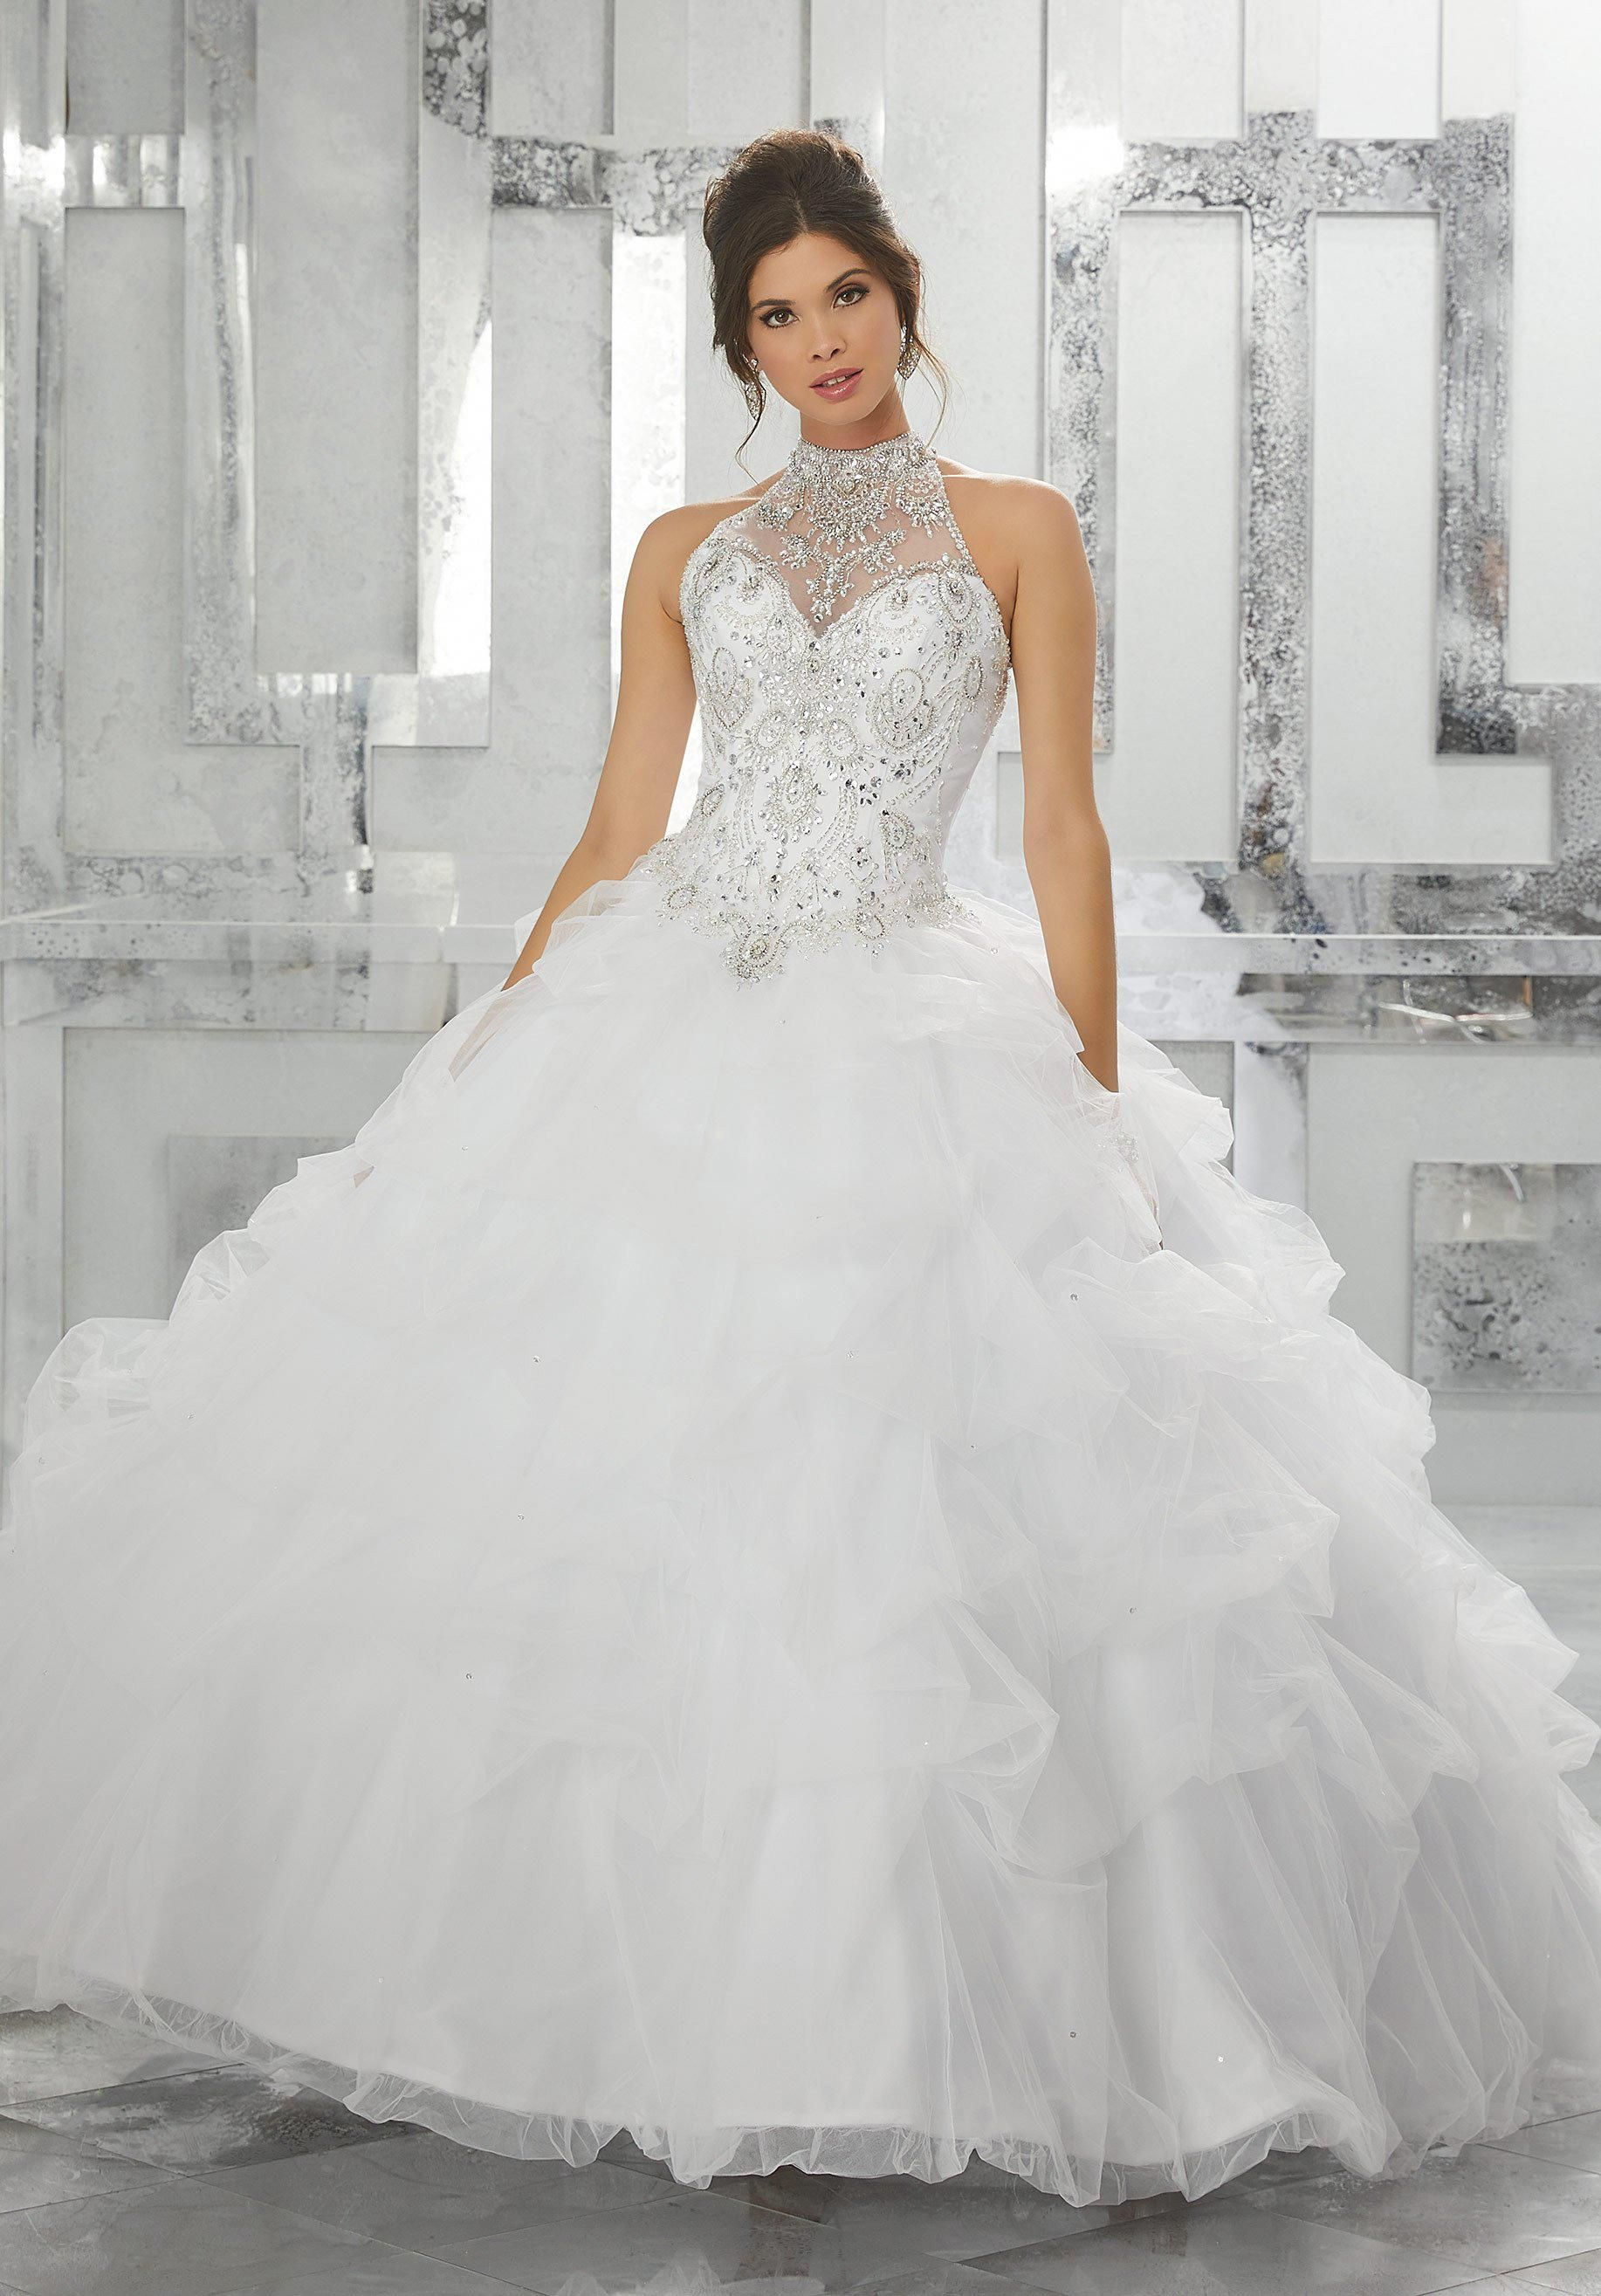 Mori Lee Quinceanera Dress prettyquinceaneradresses Tips on